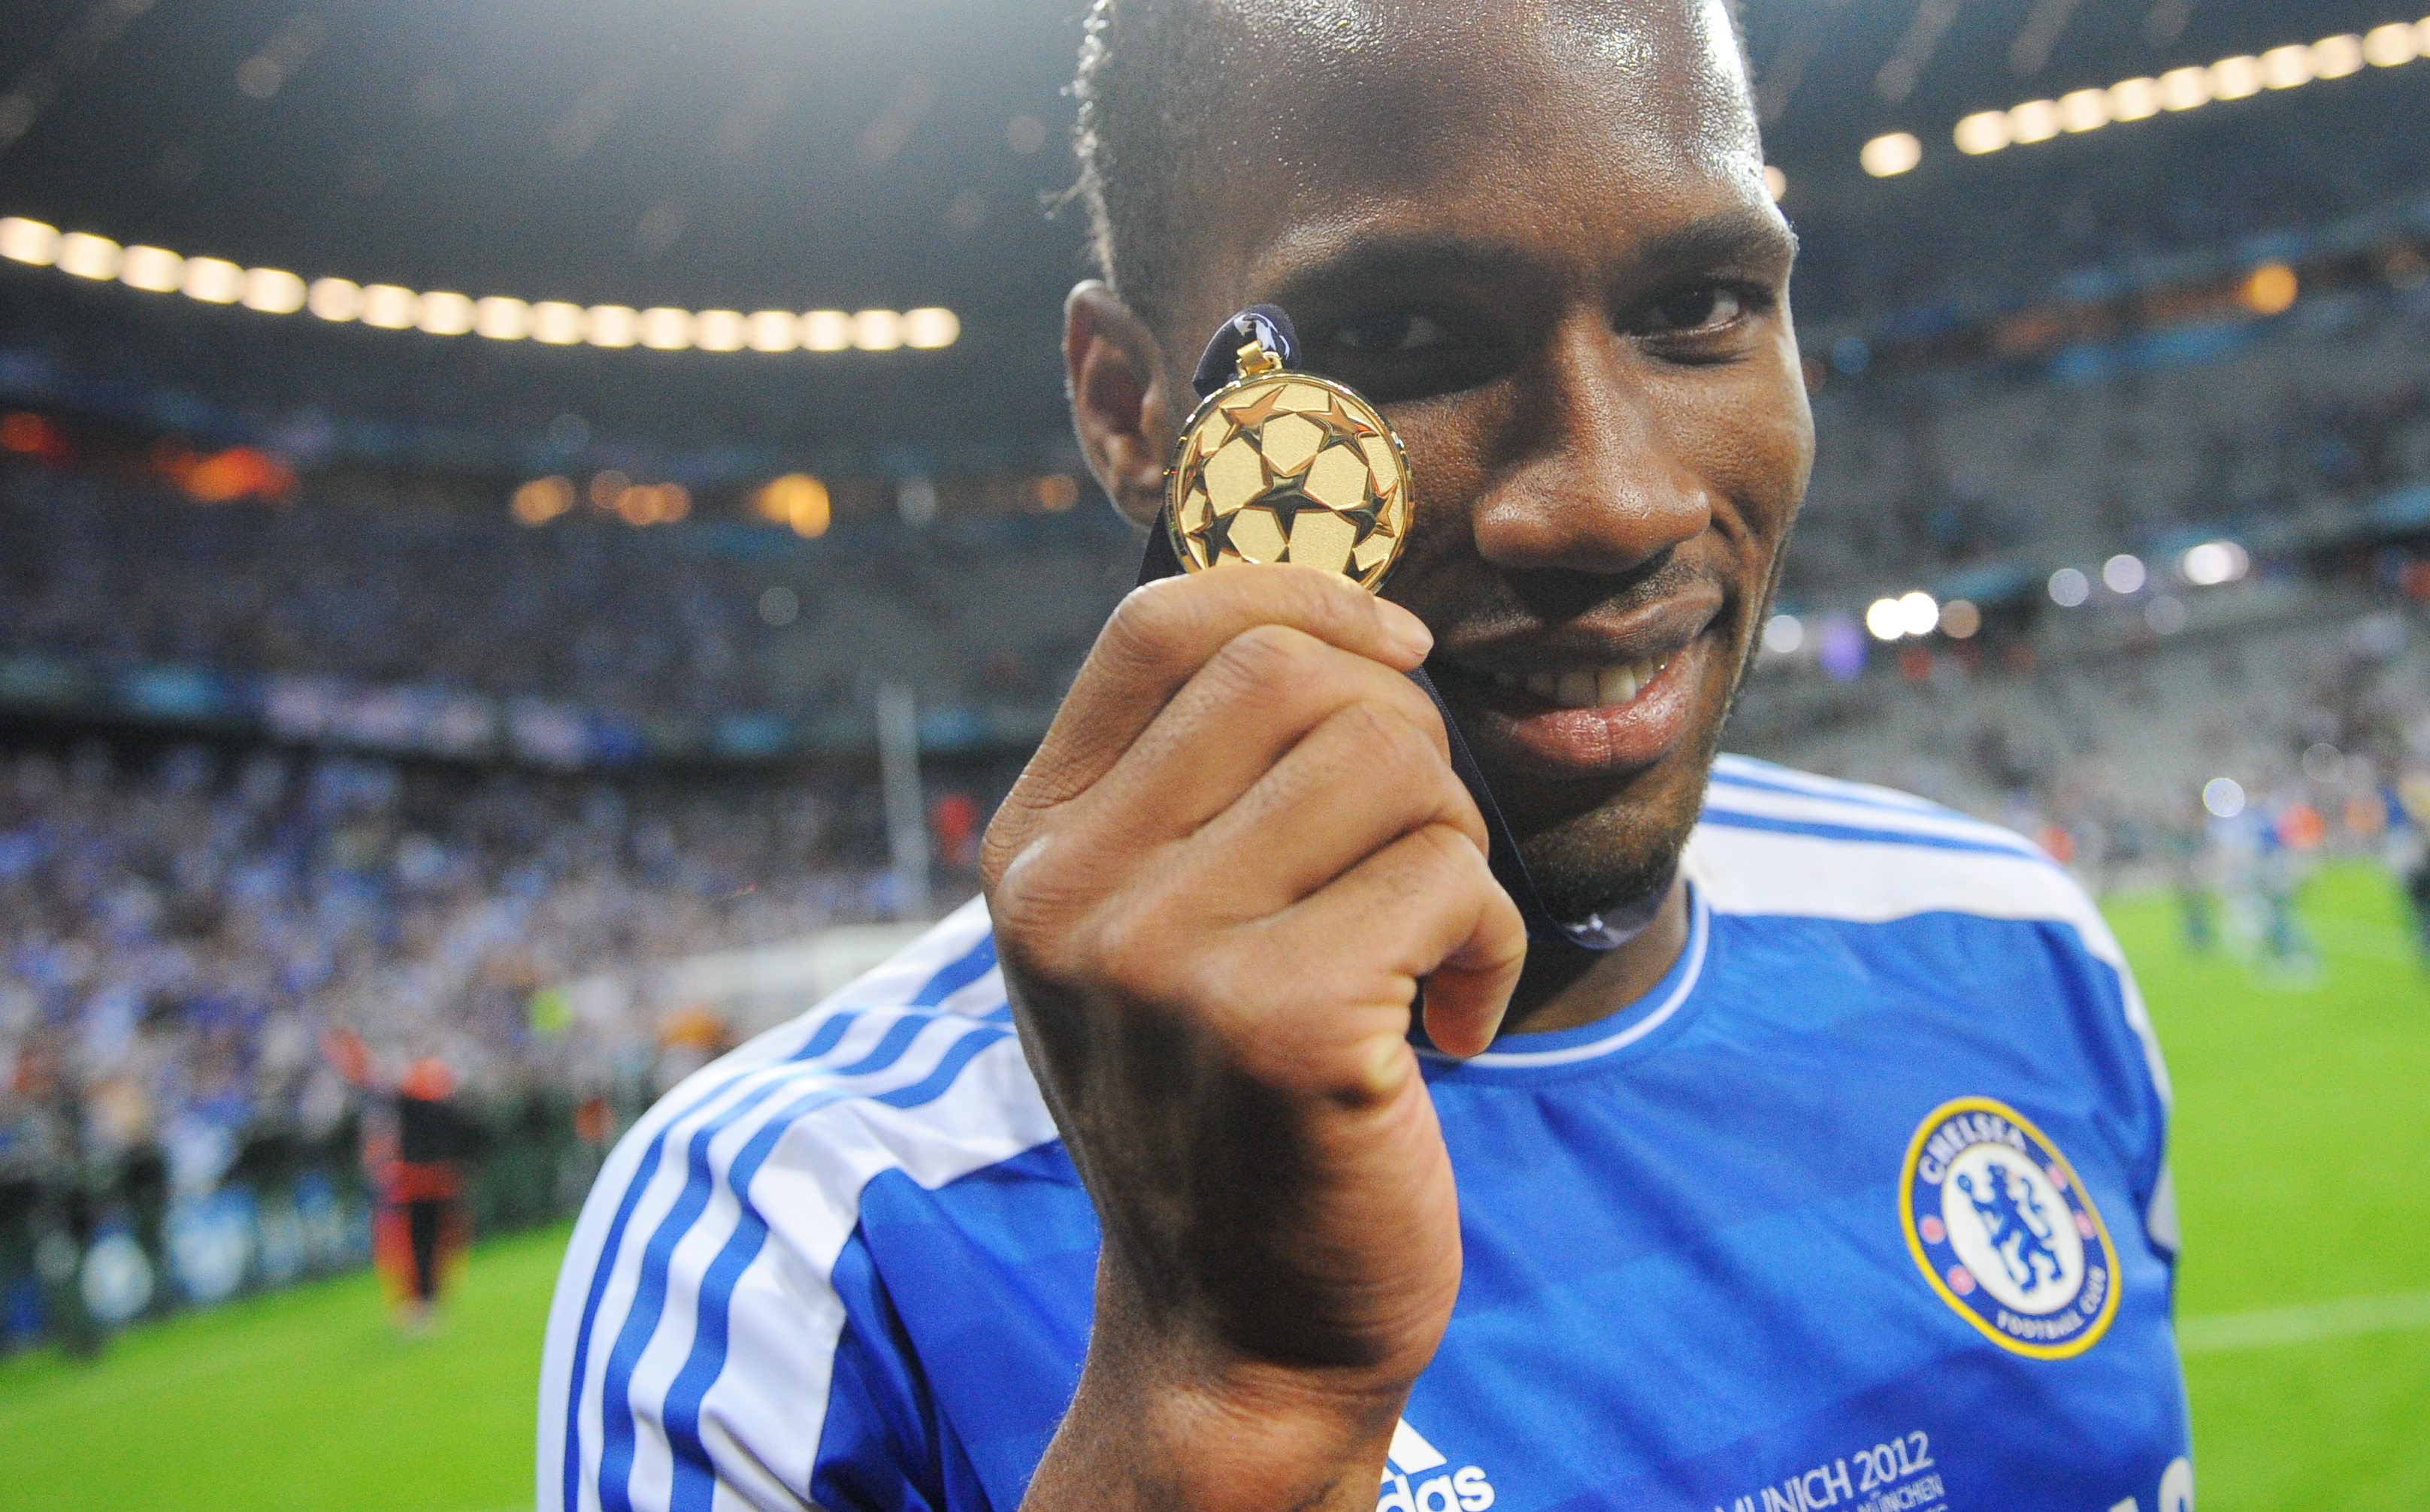 Drogba scored the winning penalty to win the Blues the Champions League final. Image: PA Images